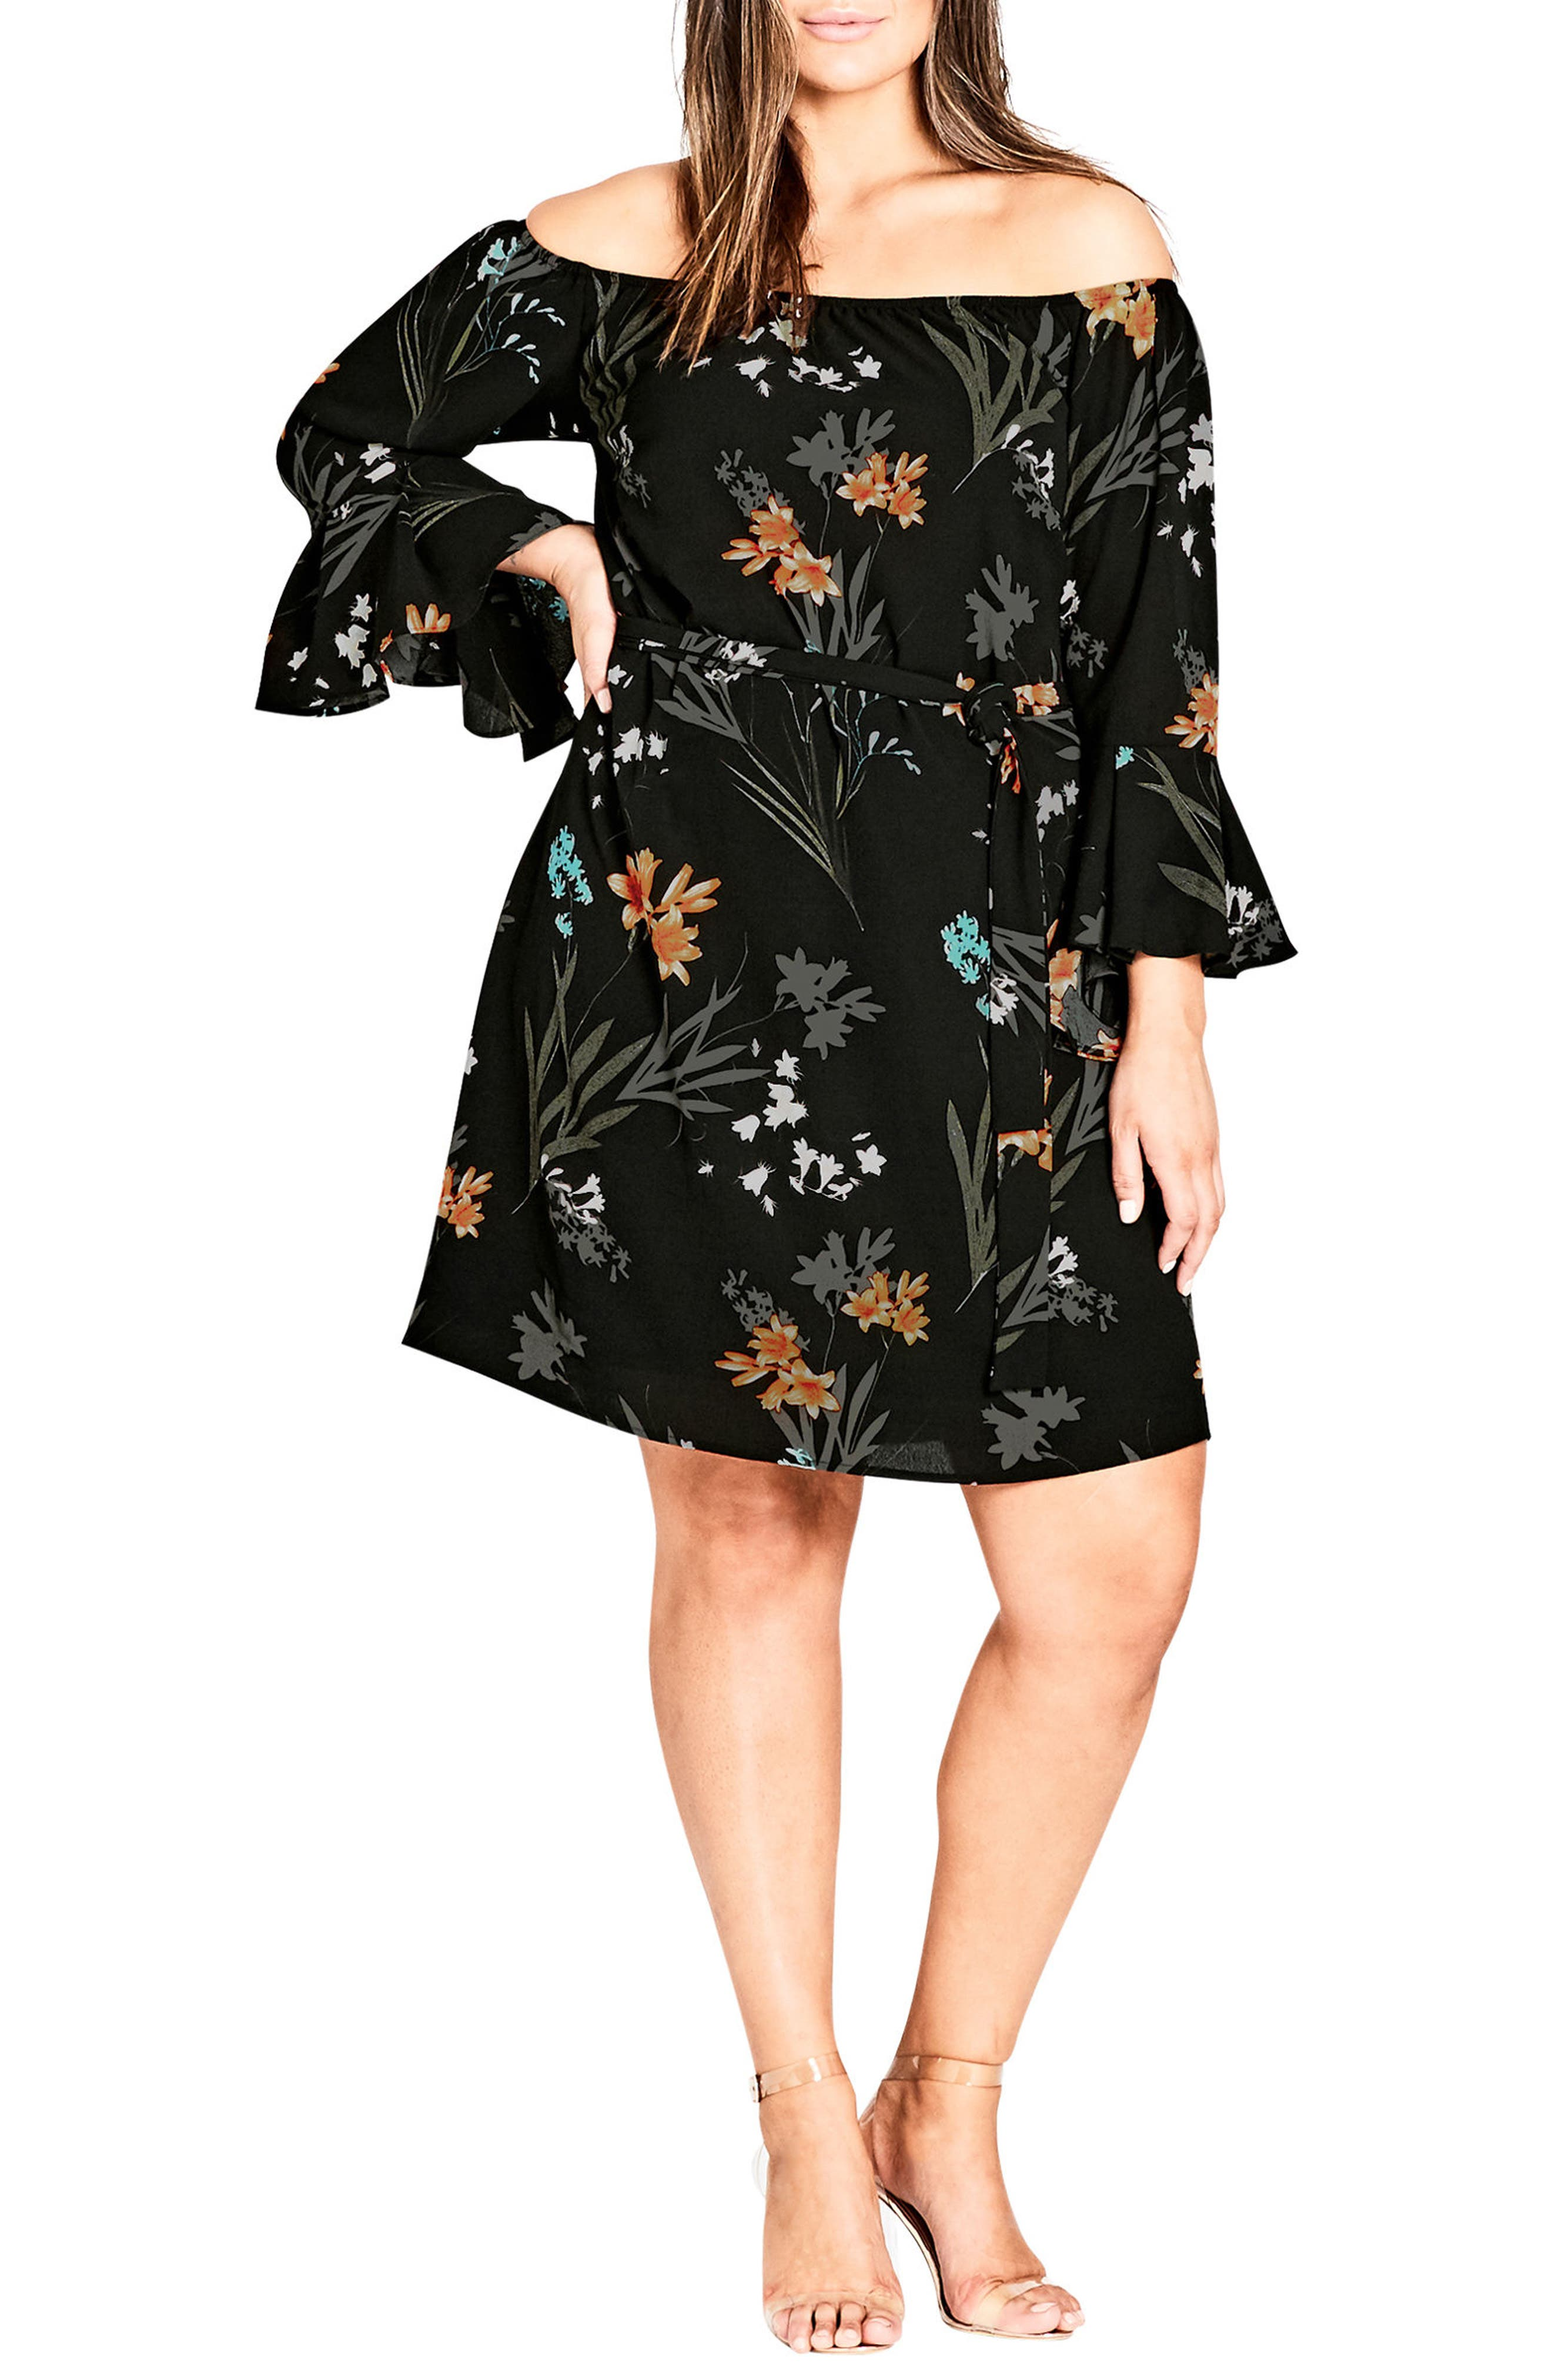 Wild Floral Off the Shoulder Tunic Dress,                             Main thumbnail 1, color,                             601